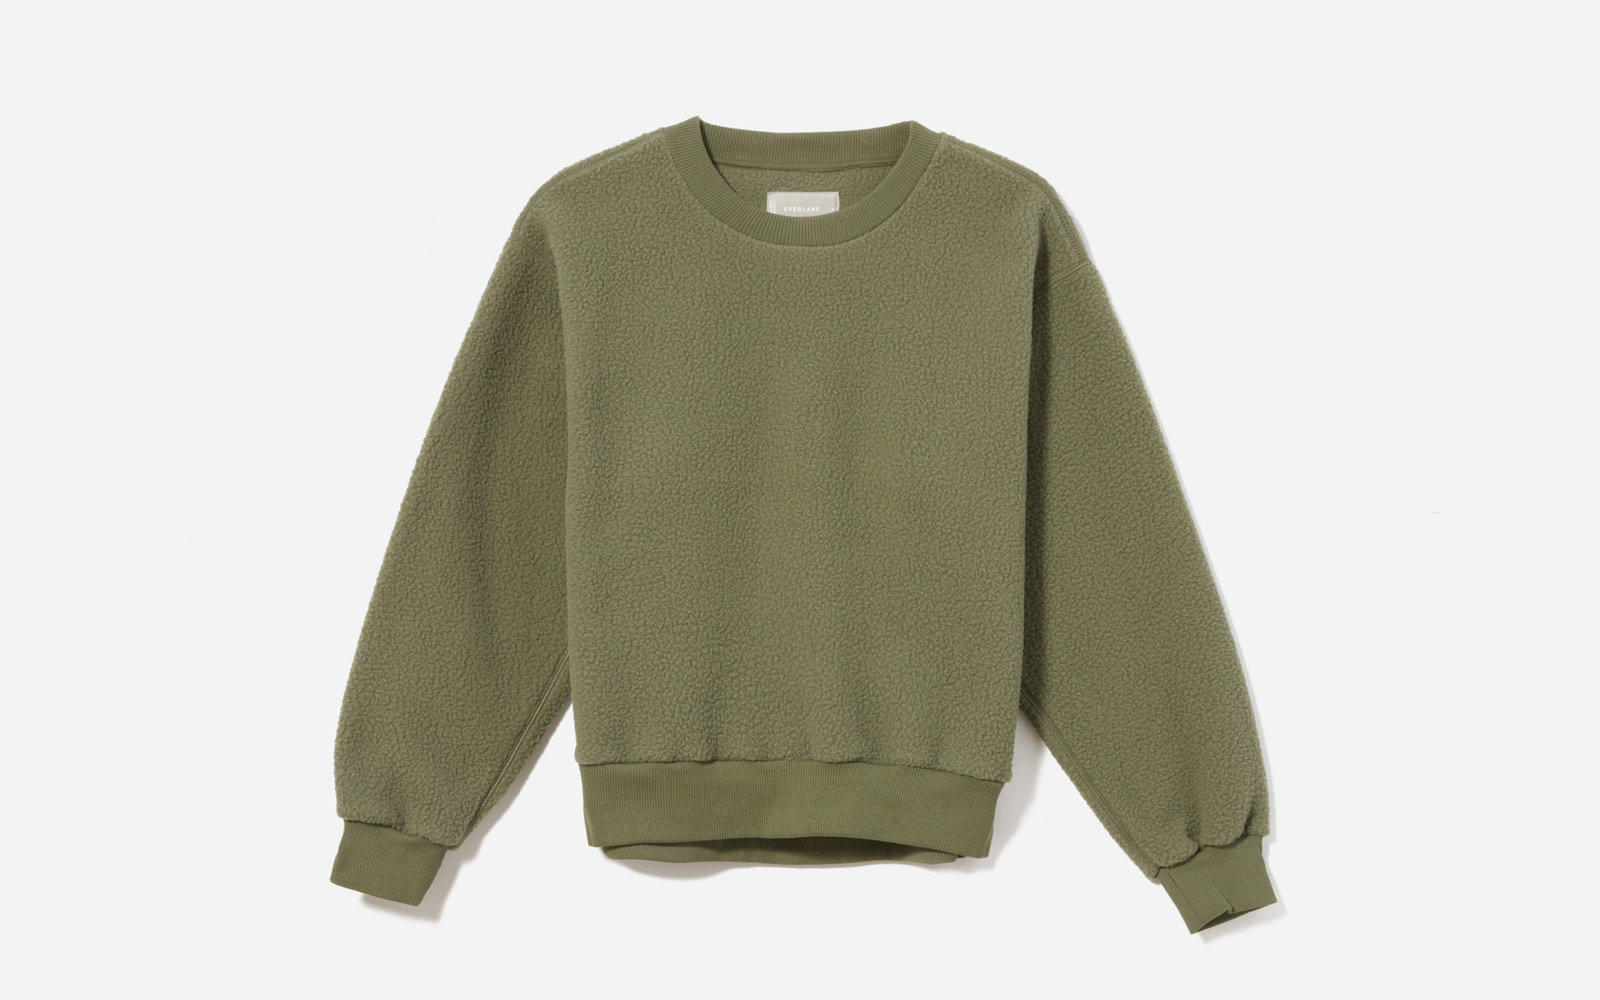 everlane crewneck sweatshirts womens